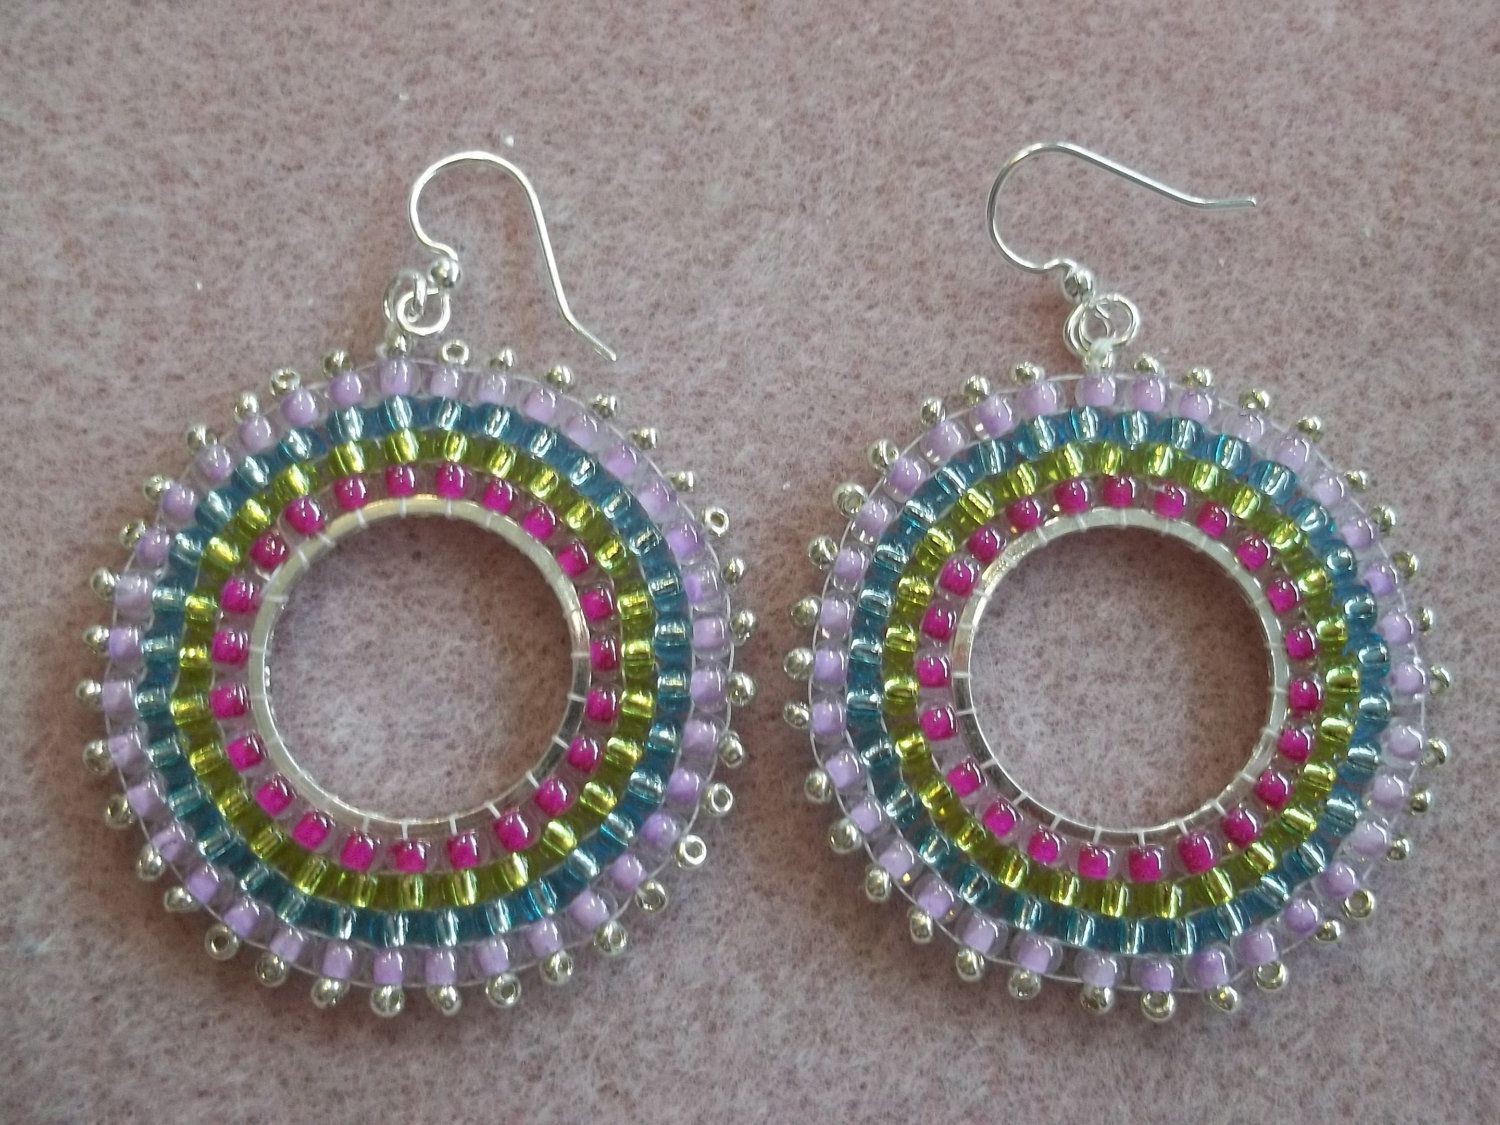 brick turquoise stitch earrings watch tutorial youtube